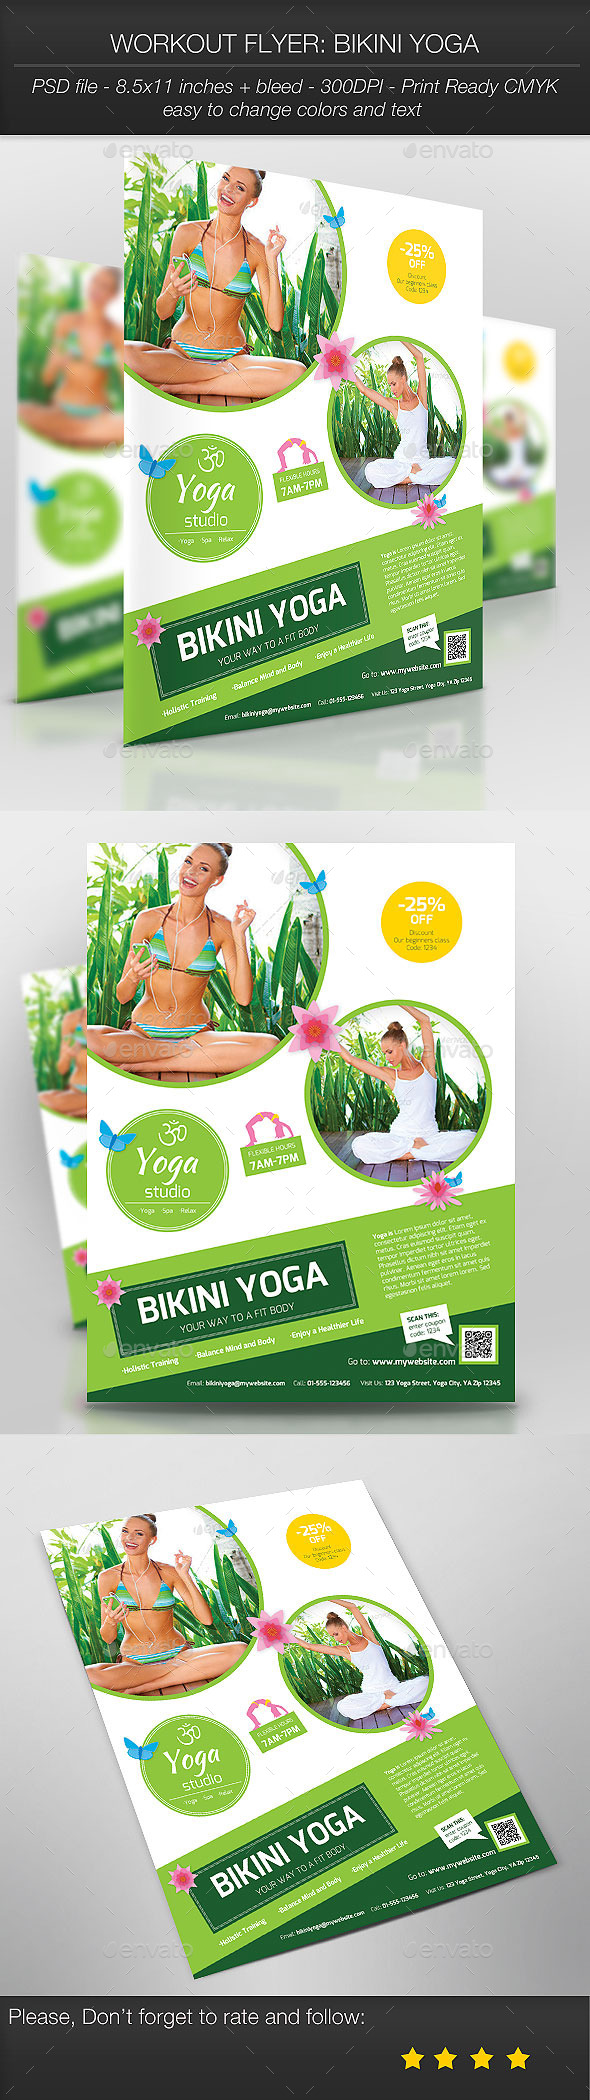 GraphicRiver Workout Flyer Bikini Yoga 9639749